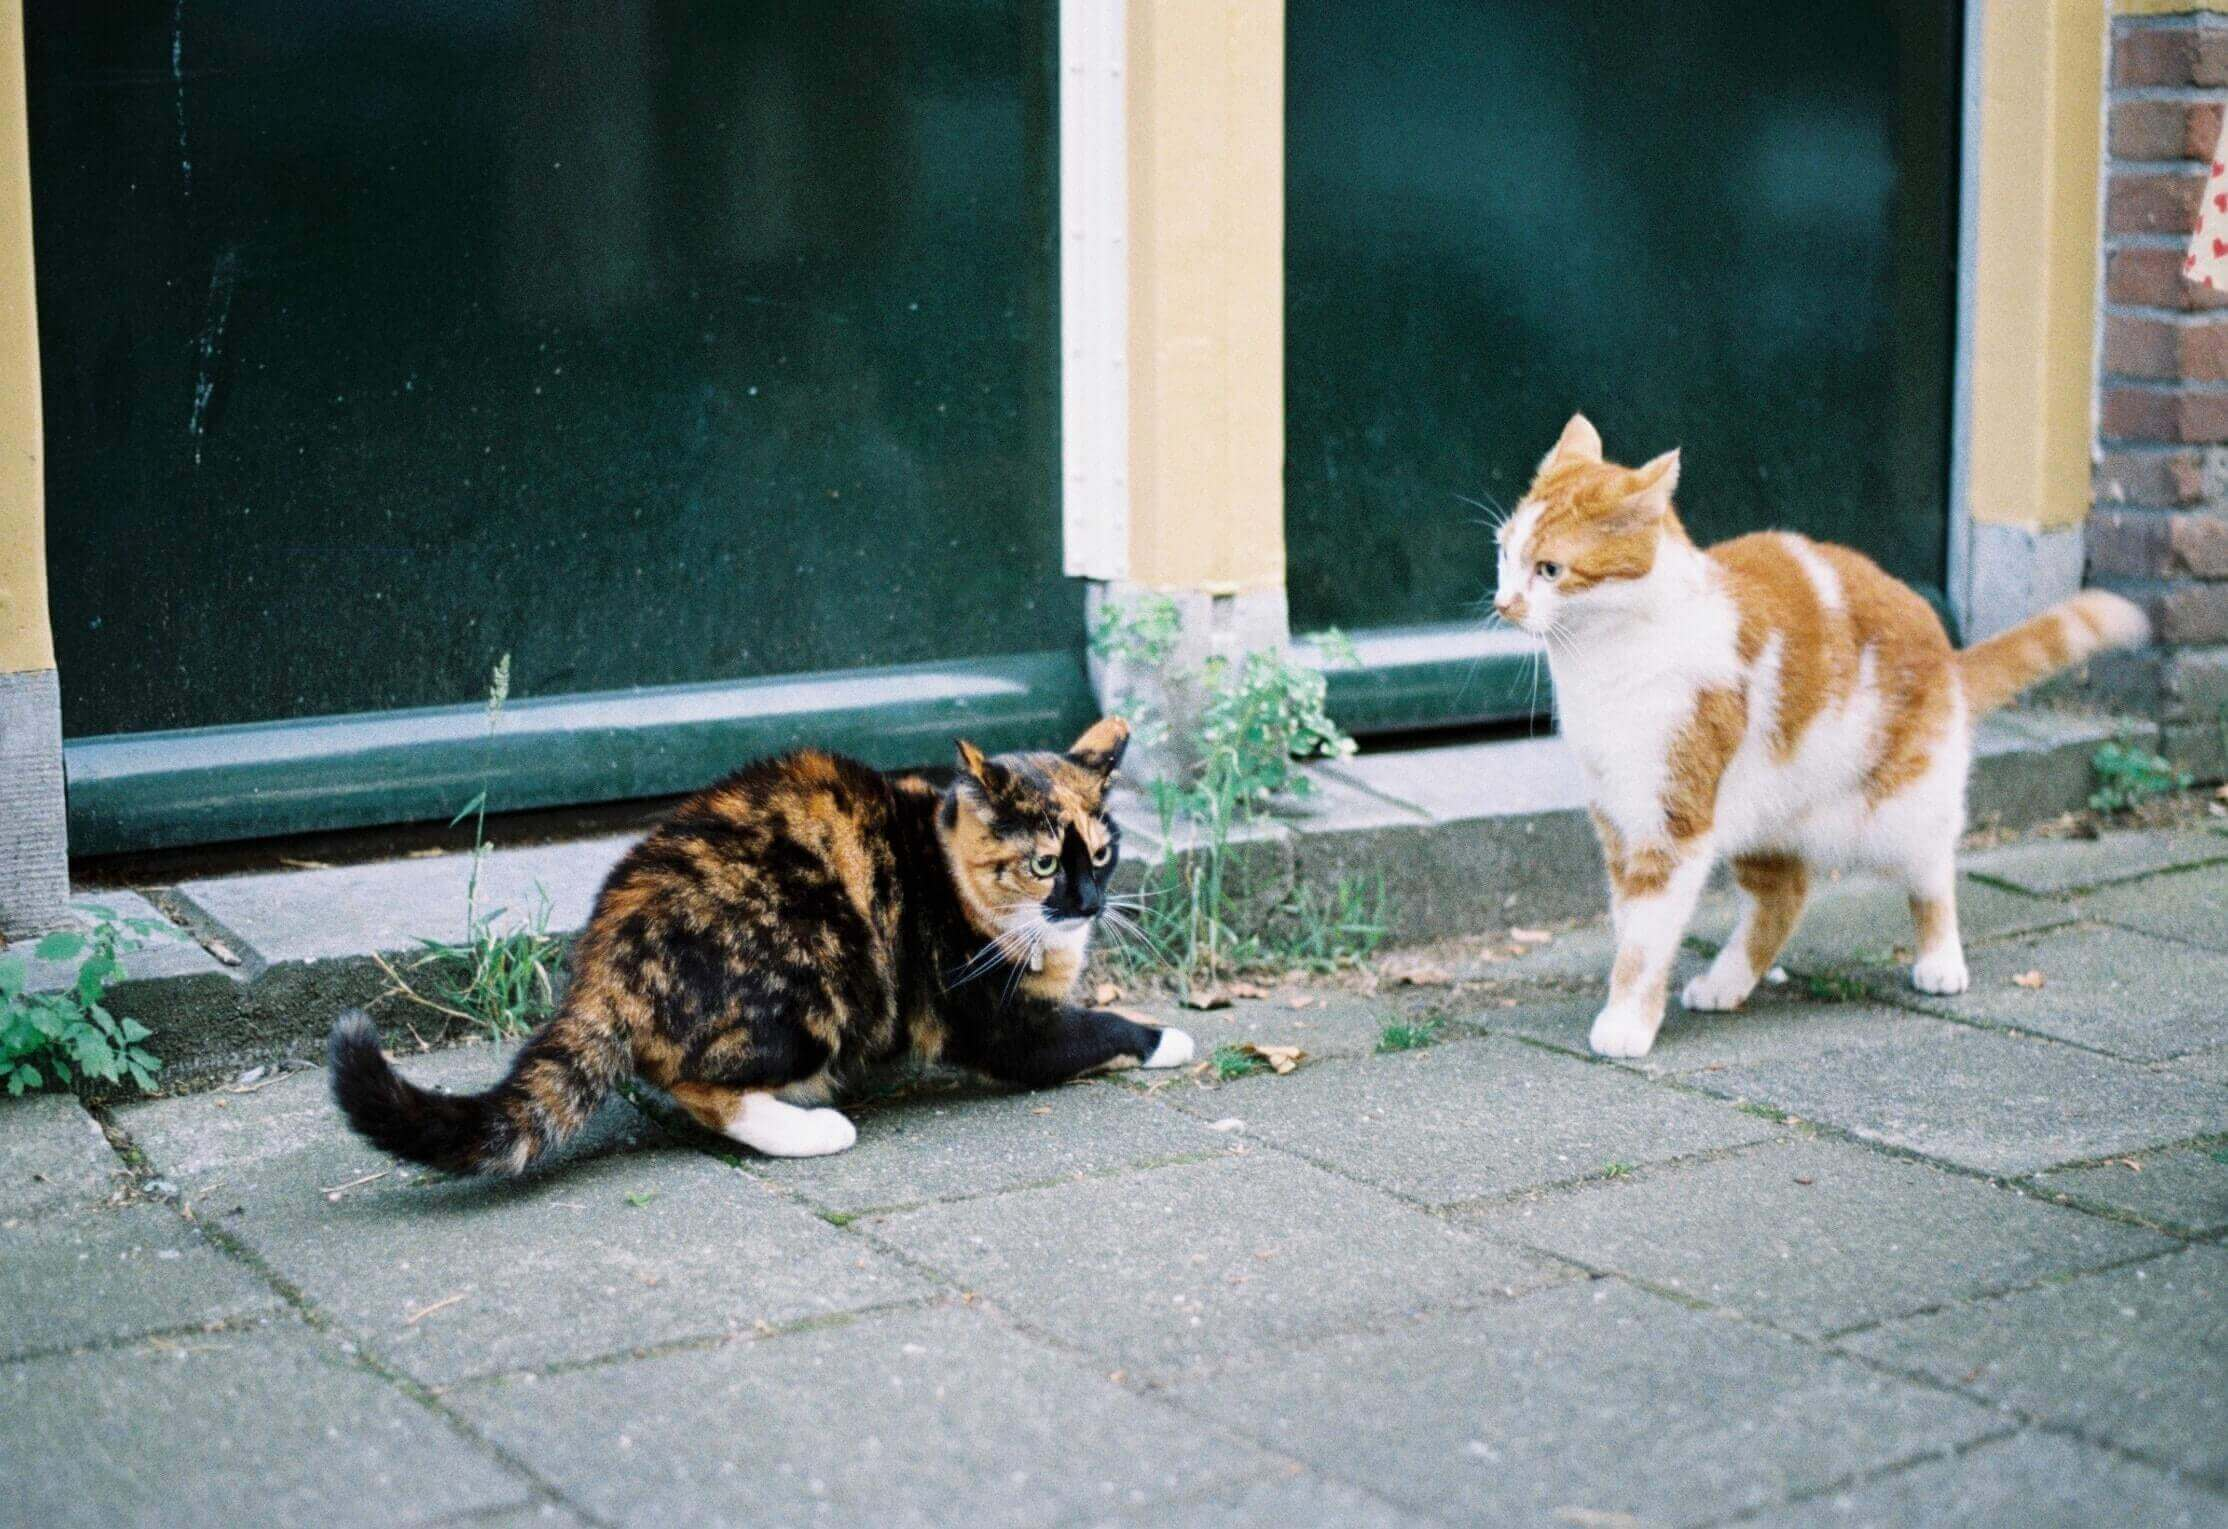 Cats fighting at the streets